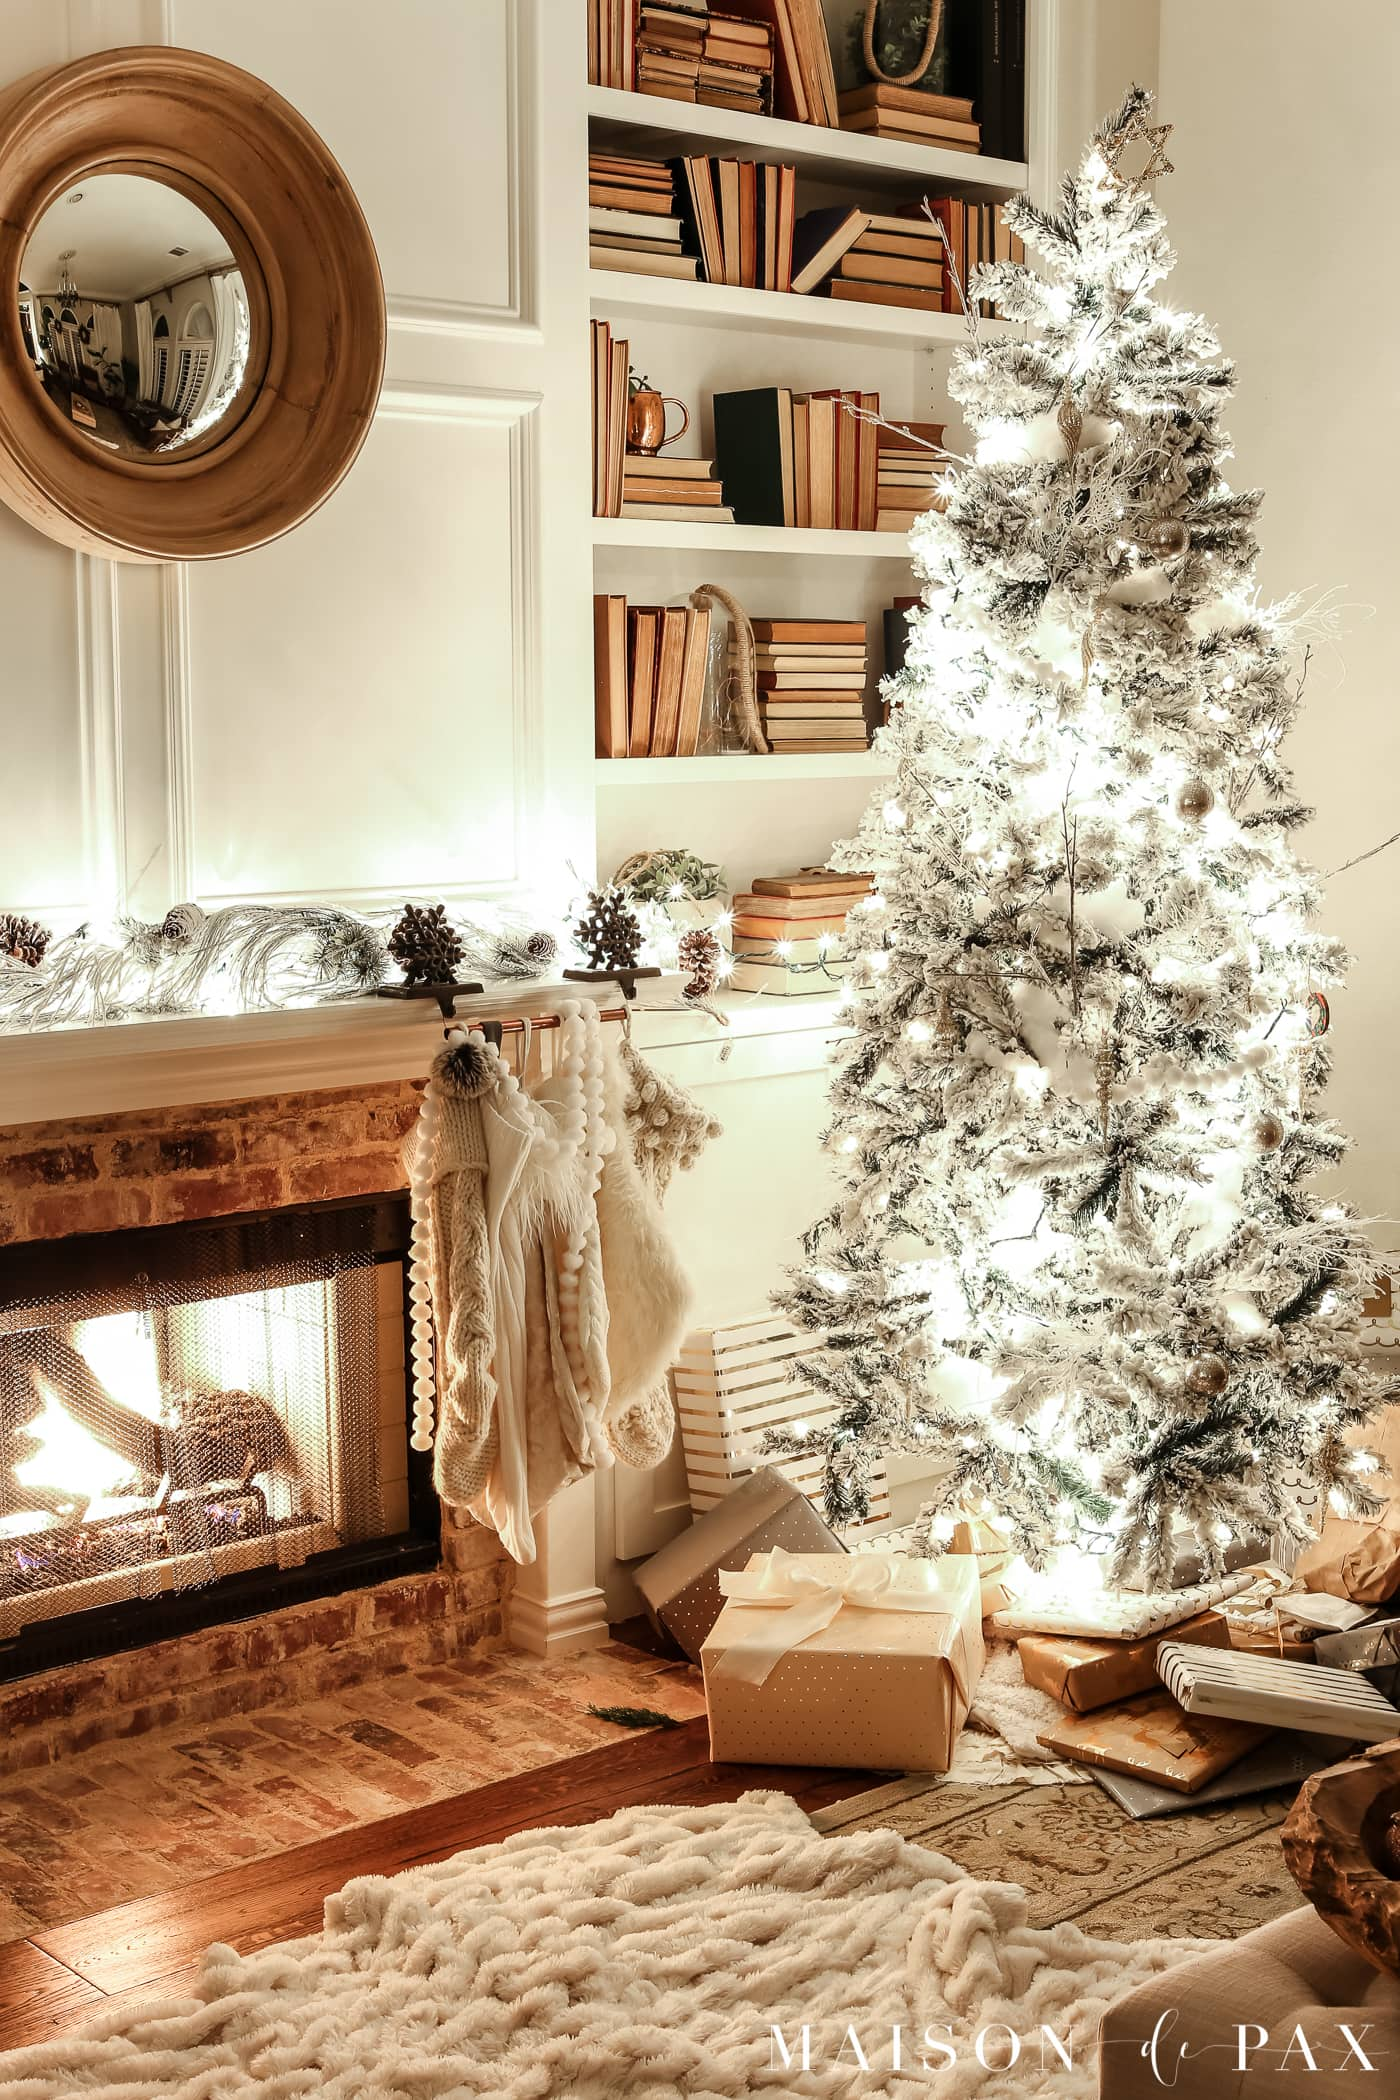 faux fur and flocked tree: gorgeous Christmas lights at night in these 25+ home tours #christmasnightstour #holidayhometour #christmaslights